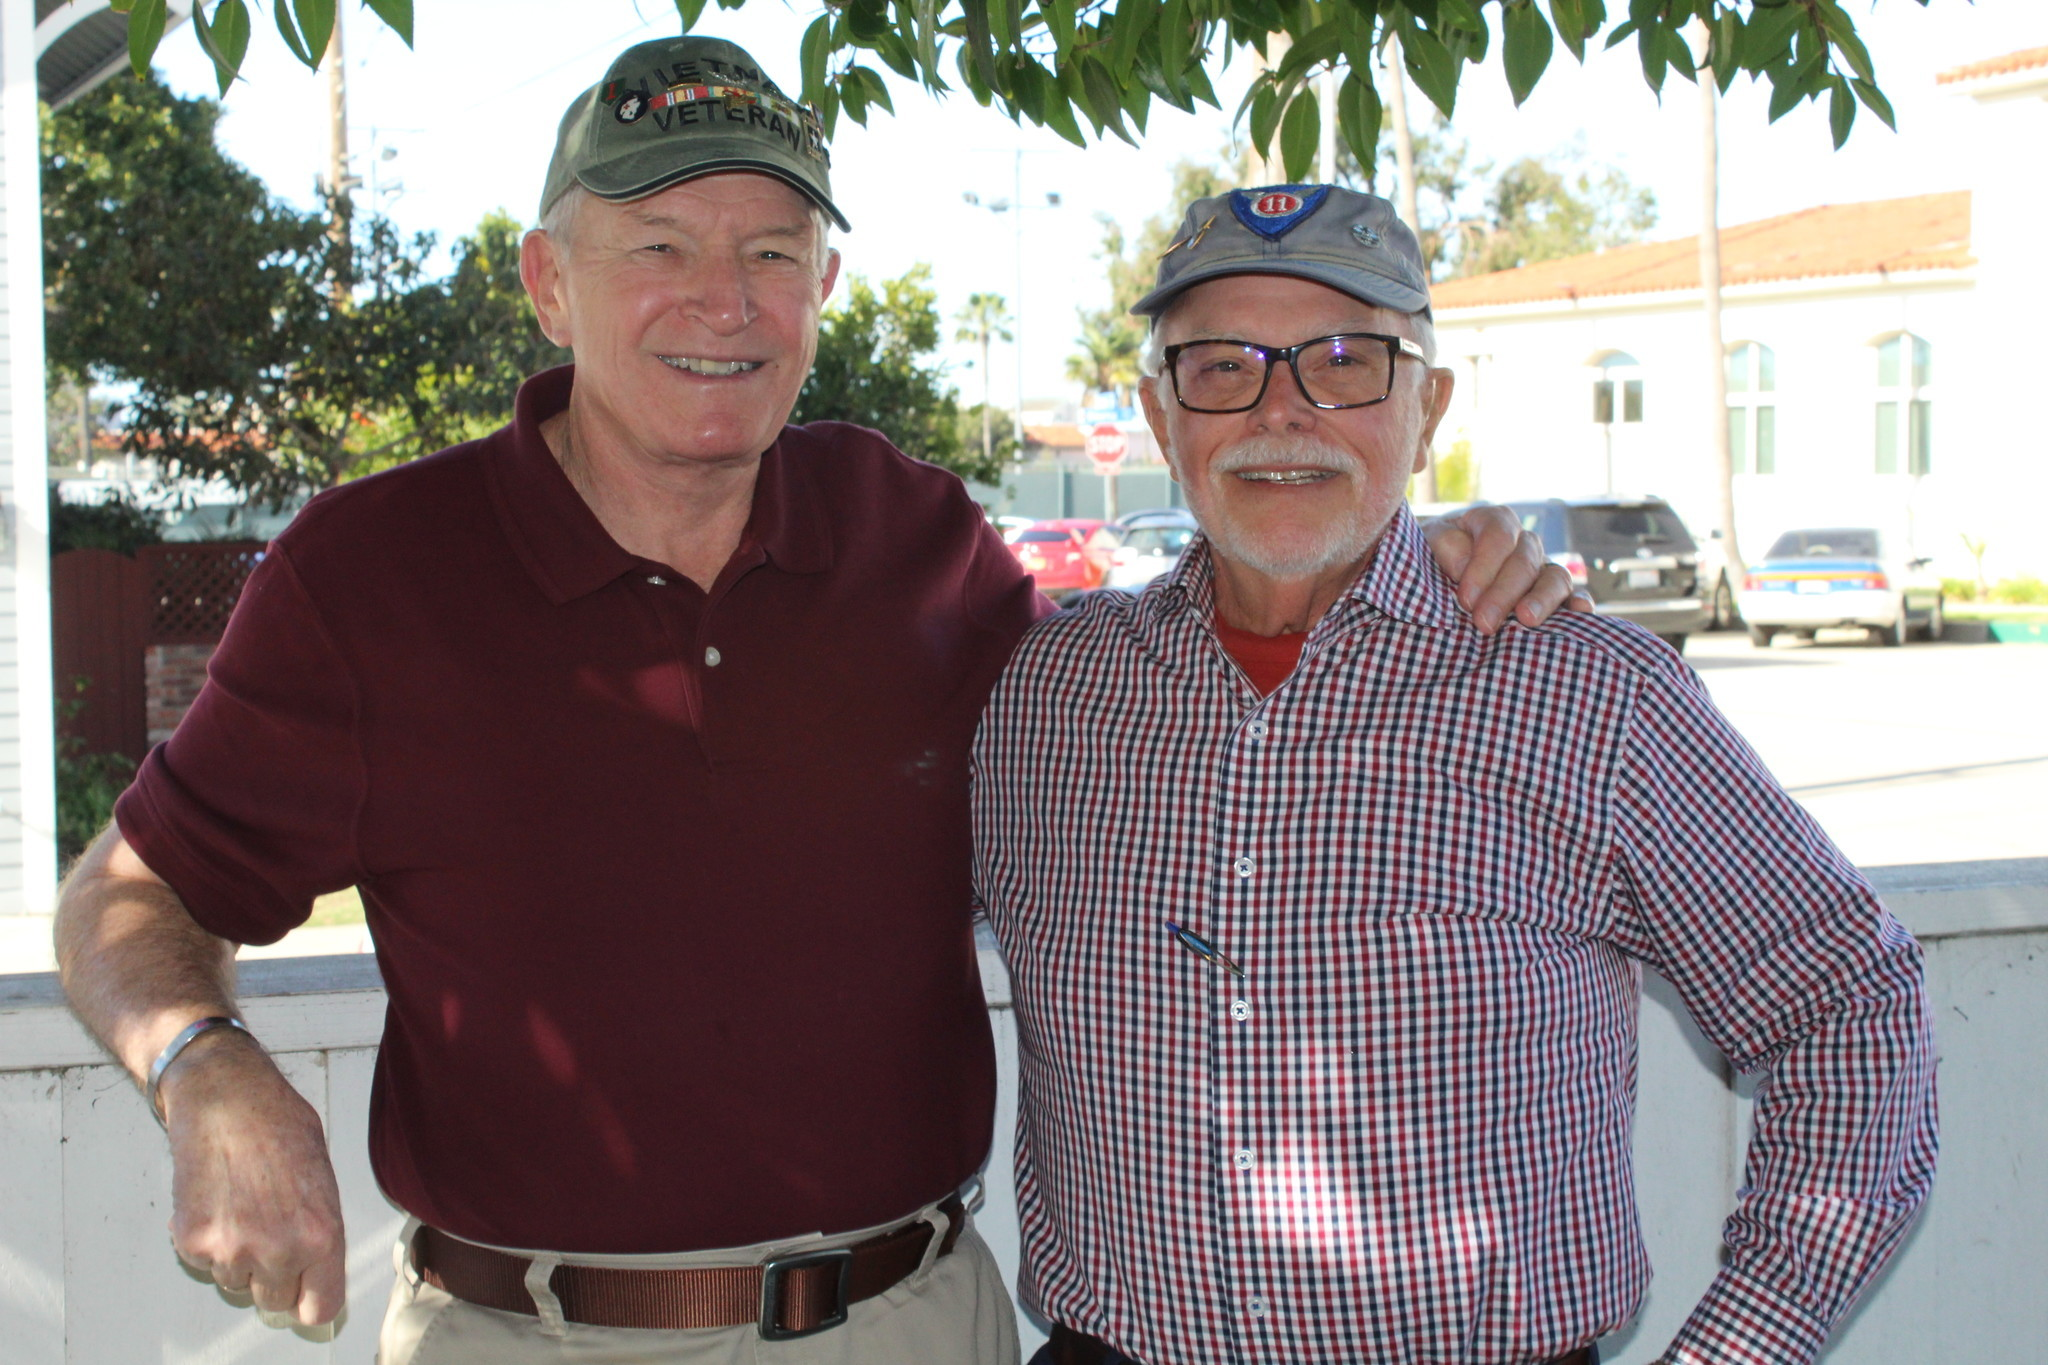 Ray Bender, left, poses in his backyard with his fellow U.S. Army veteran Fred Thacher.